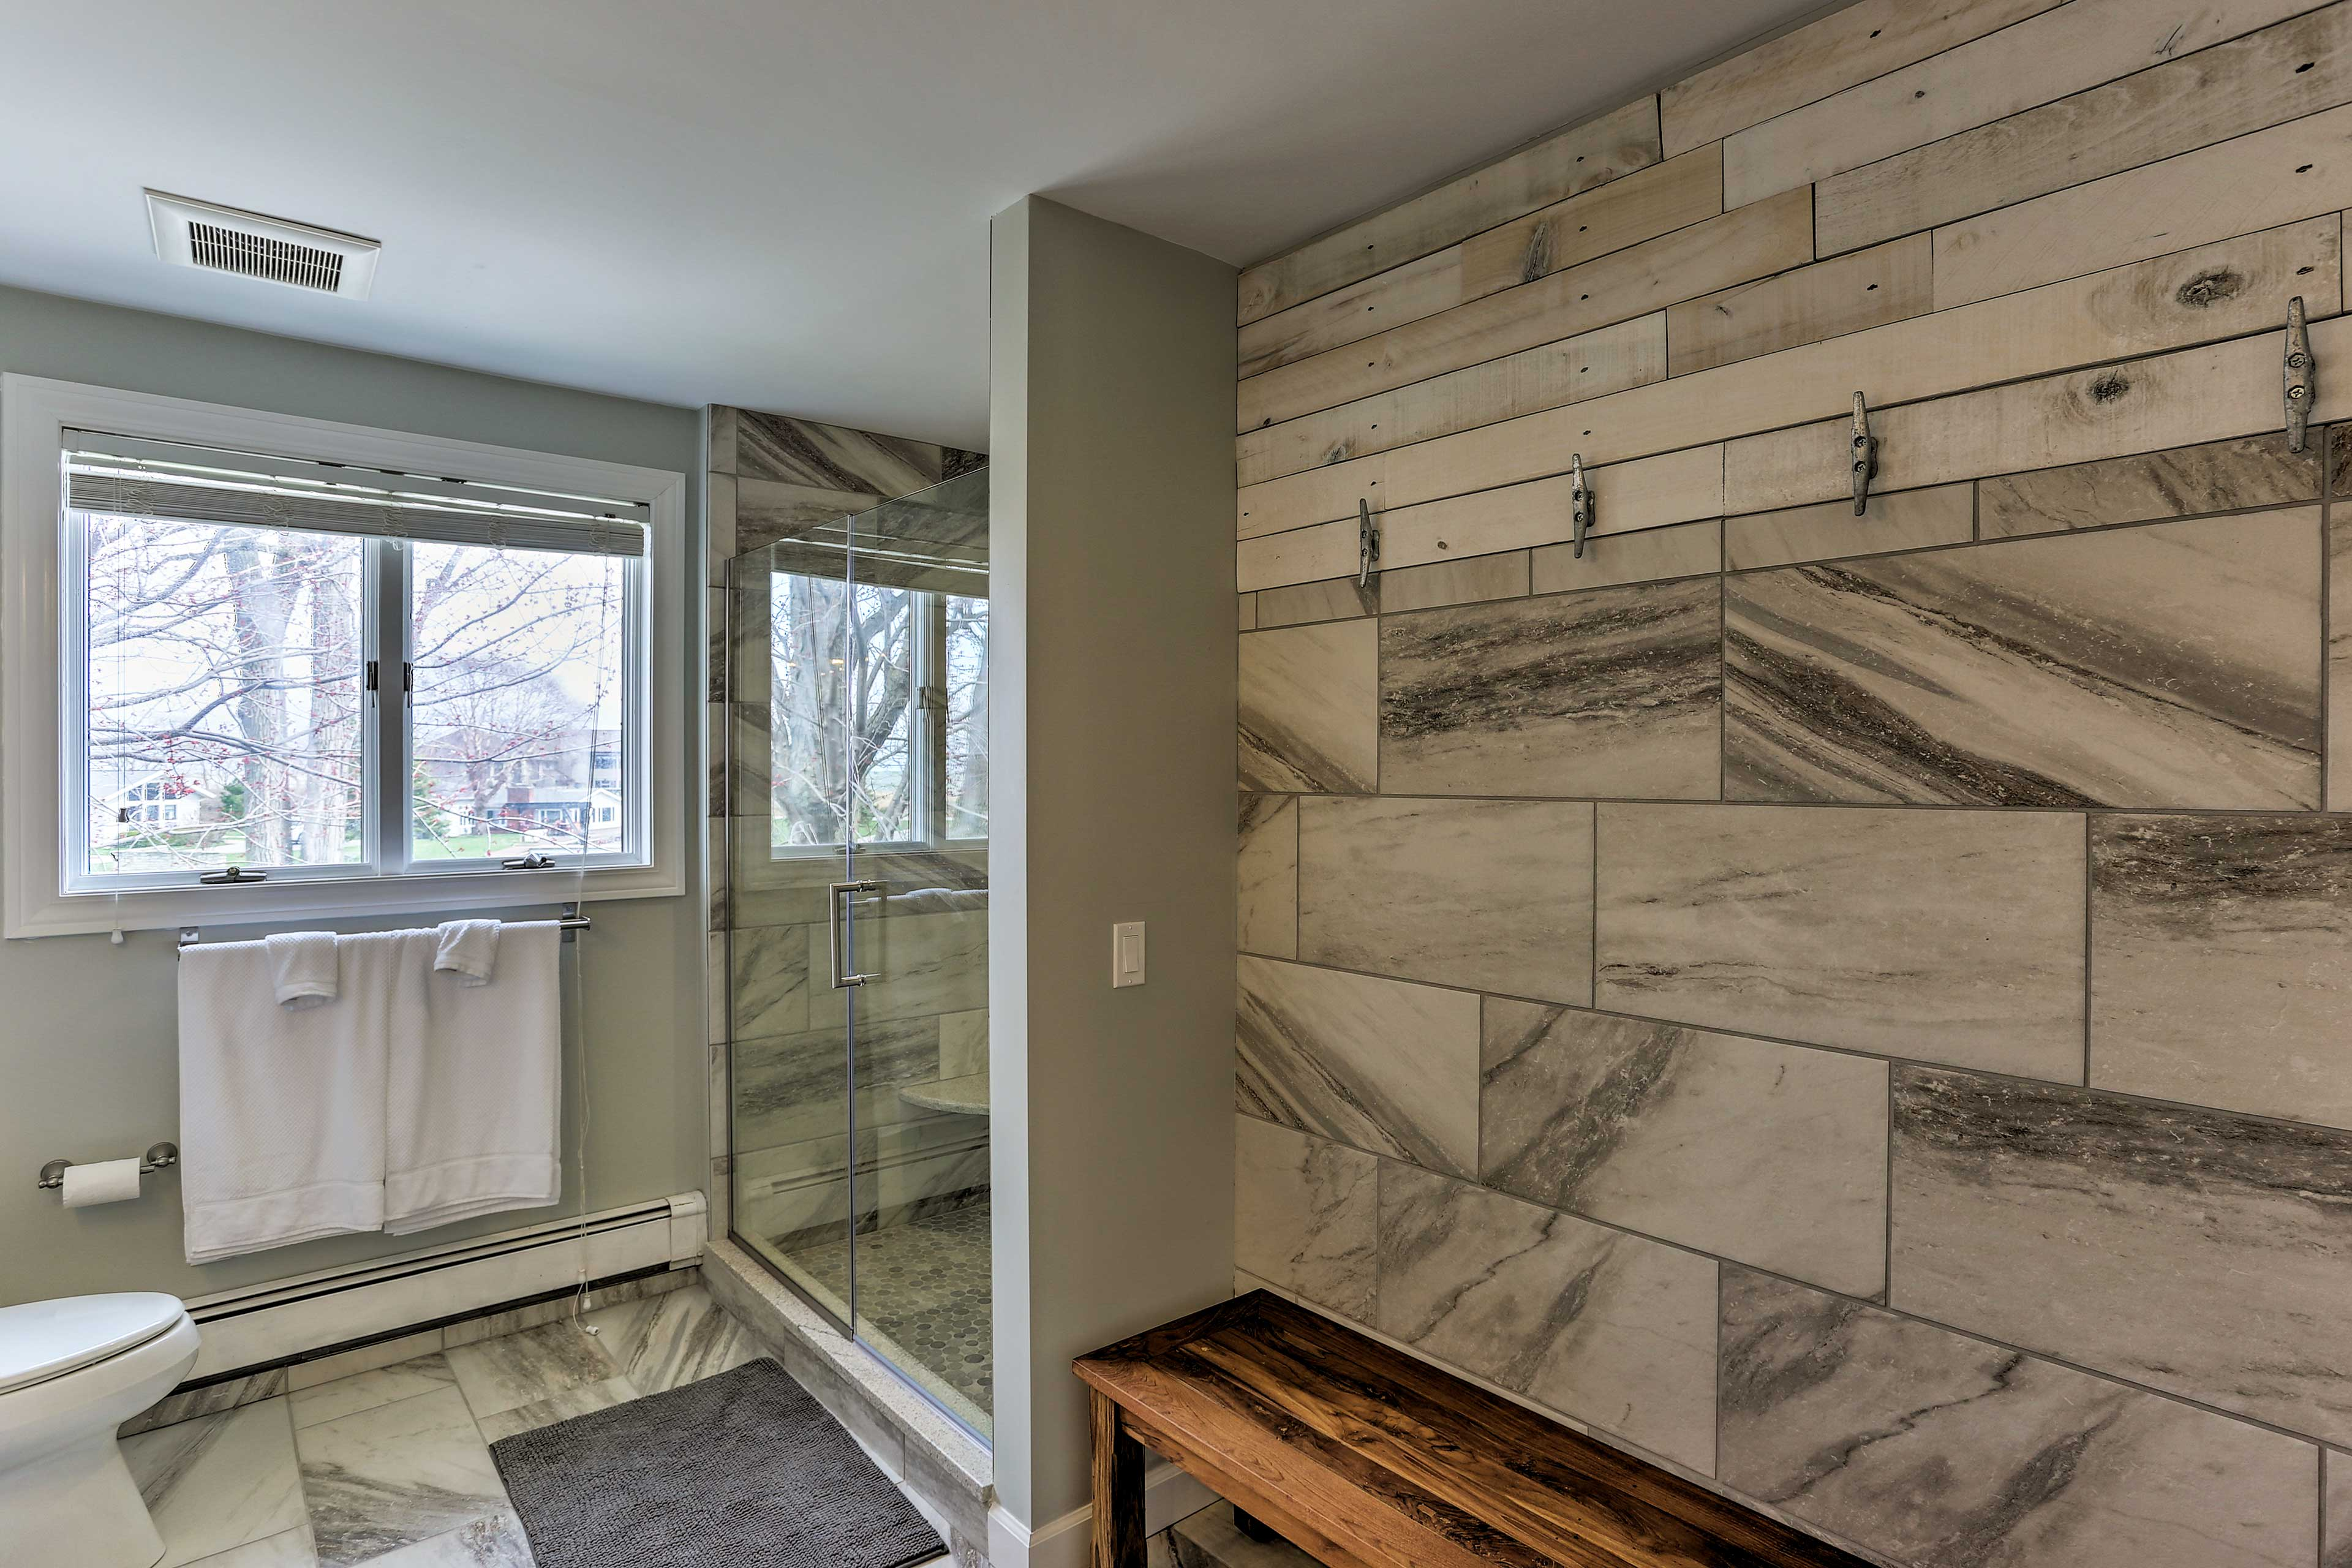 Step into the large walk-in shower to rinse off the day.